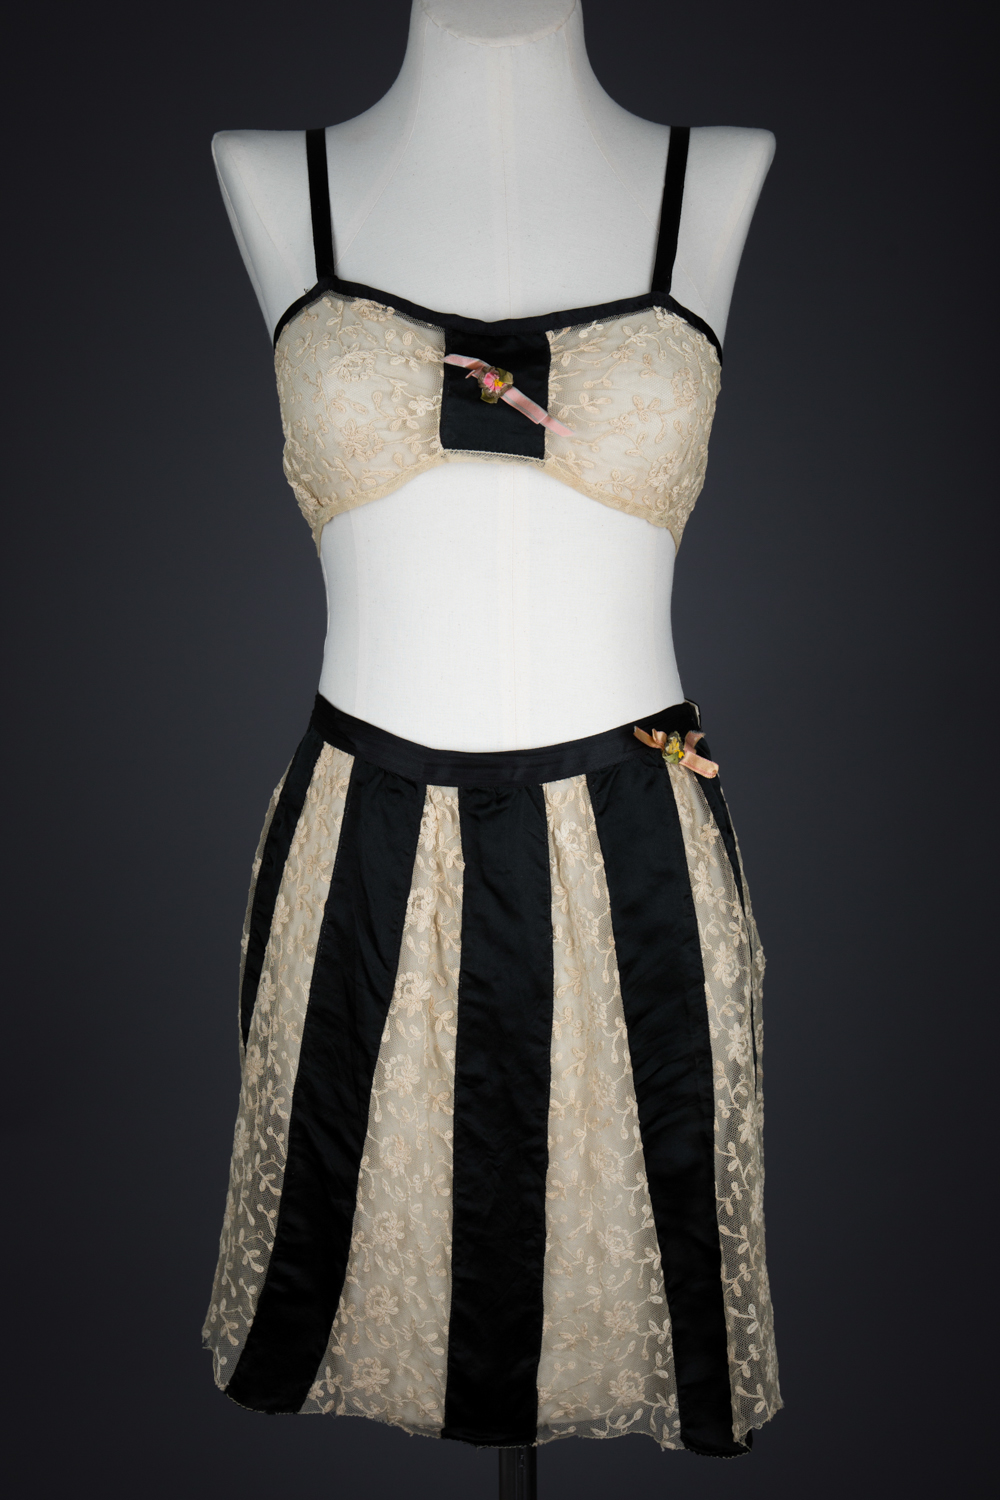 Black Silk & Embroidered Tulle Bra & Tap Pants by Owl Make, c. 1920s, USA. The Underpinnings Museum. Photography by Tigz Rice.